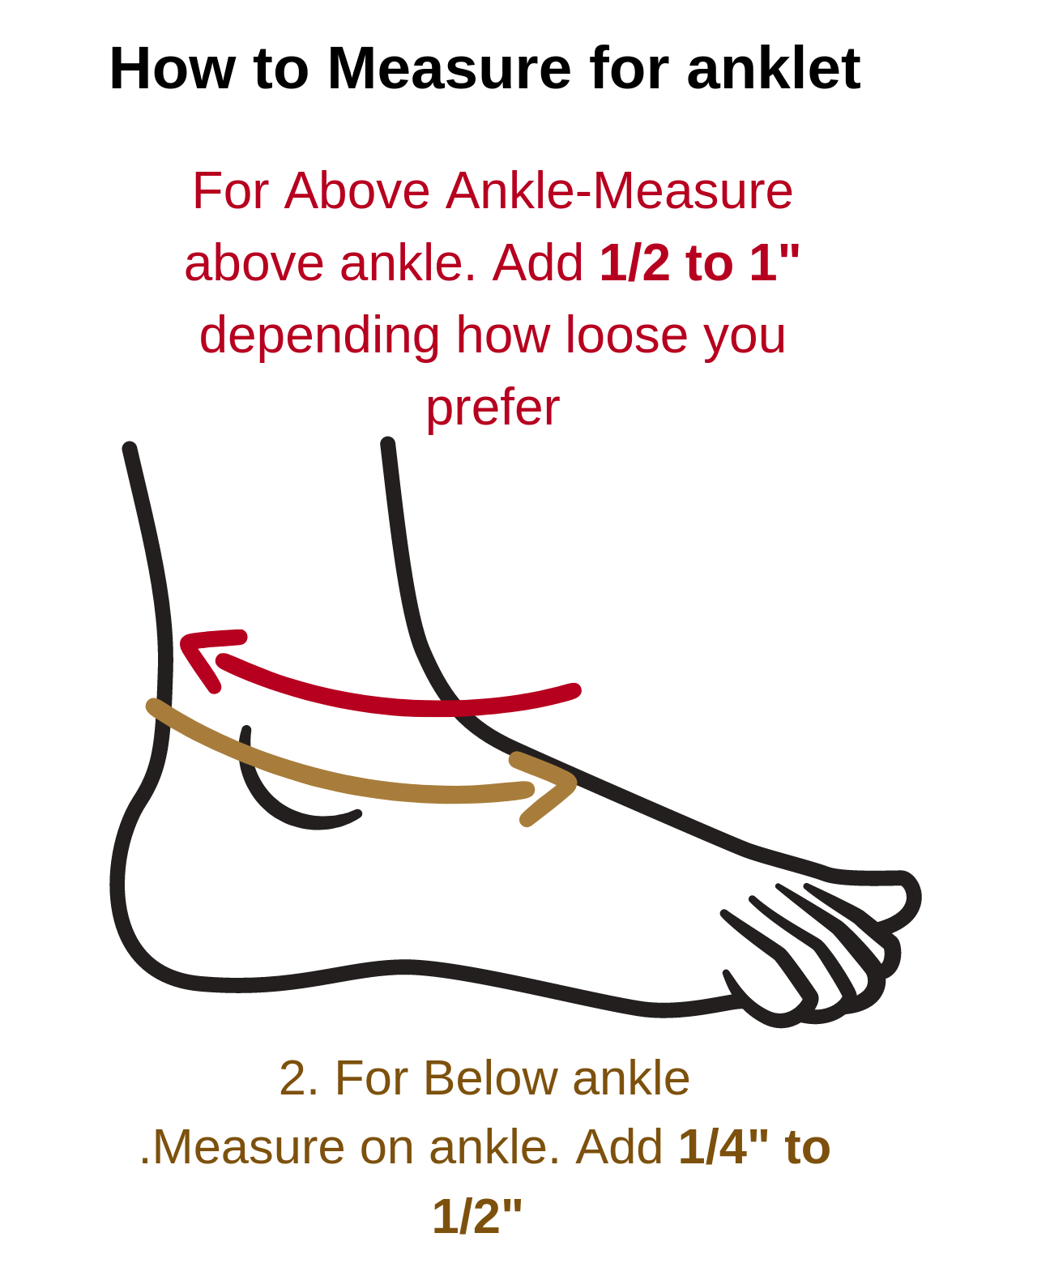 image of anklet measurement guide